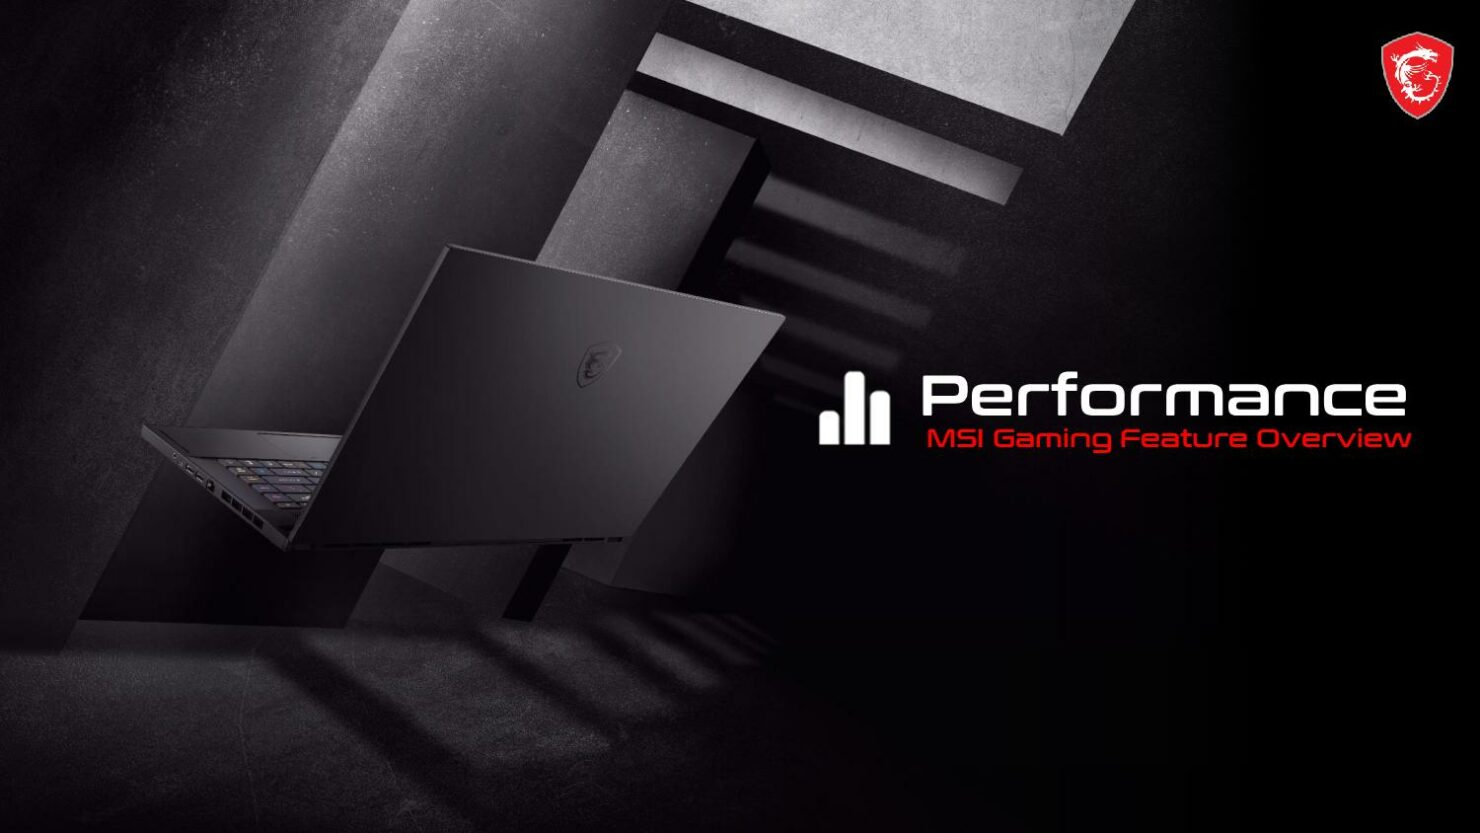 msi-gs66-stealth-product-information-page-007-2